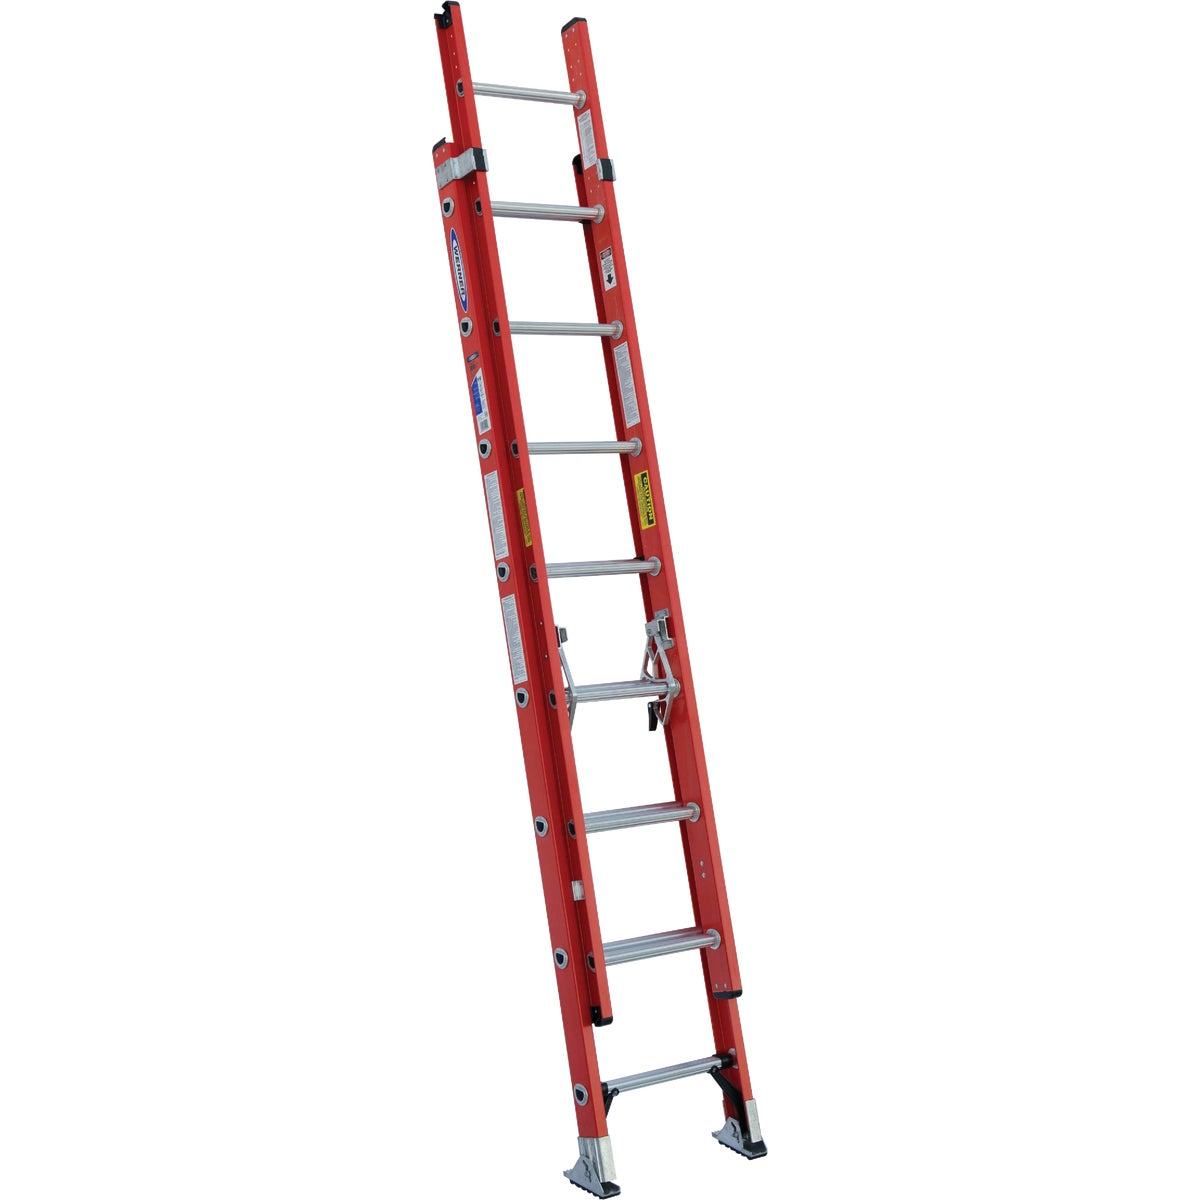 T-1A 16' FBGL EXT LADDER - D6216-2 by Werner Ladder